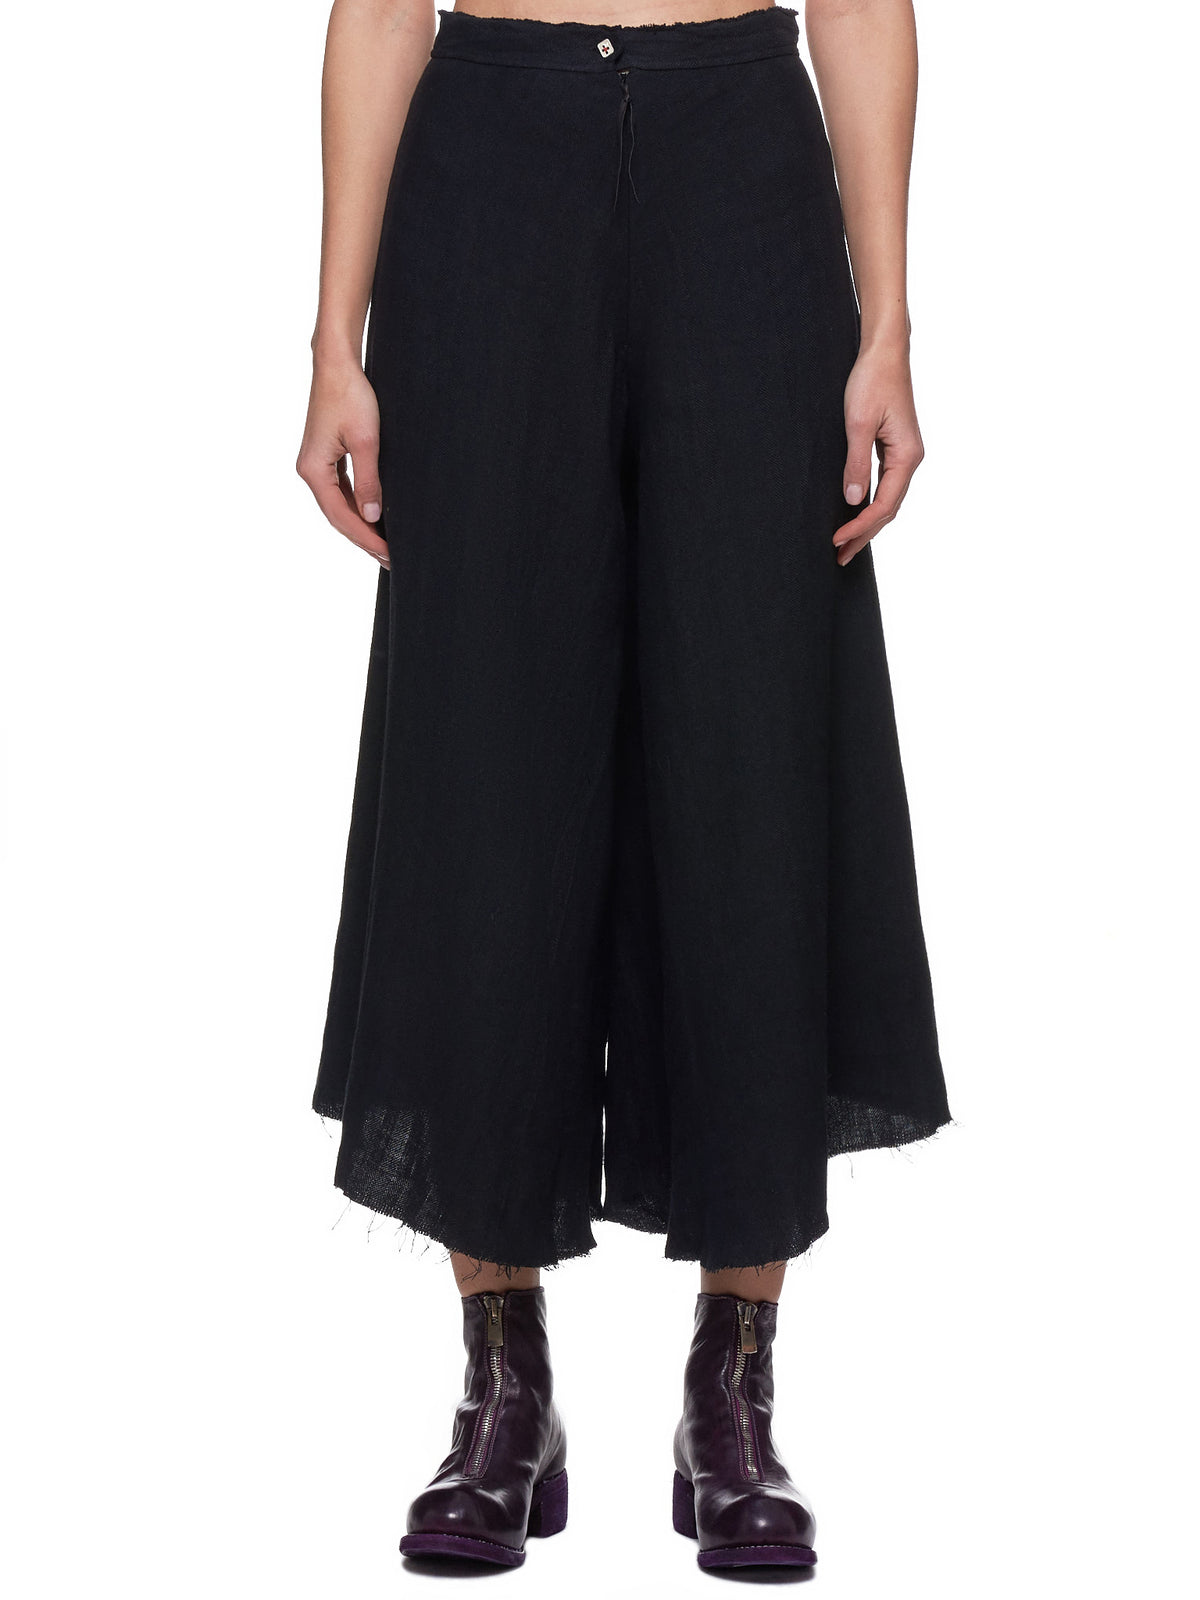 Raw-Hem Trousers (PW480-LHER1-BLACK)